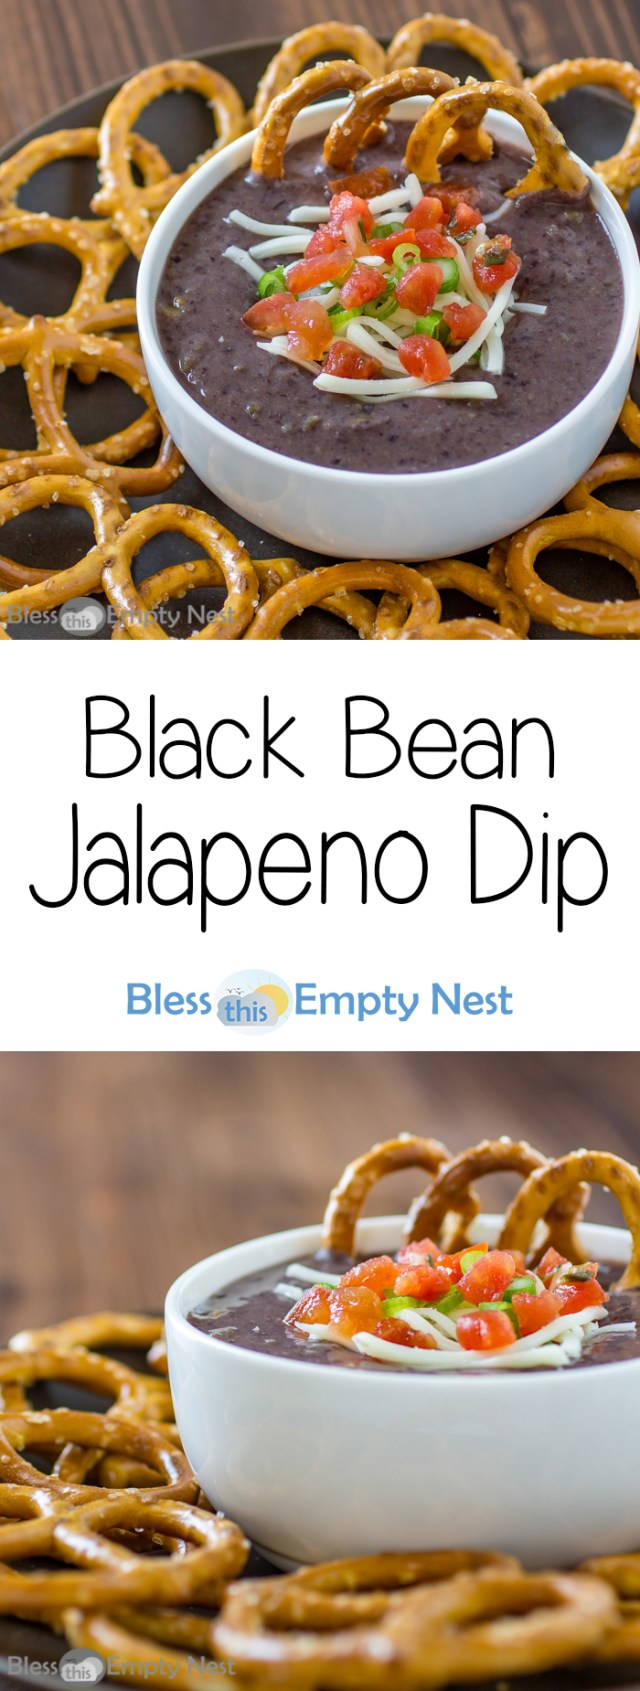 Black Bean Jalapeno Dip | Bless This Empty Nest - All of the flavor and none of the calories of your typical bean dip recipe! This is one of my favorite healthy recipes!